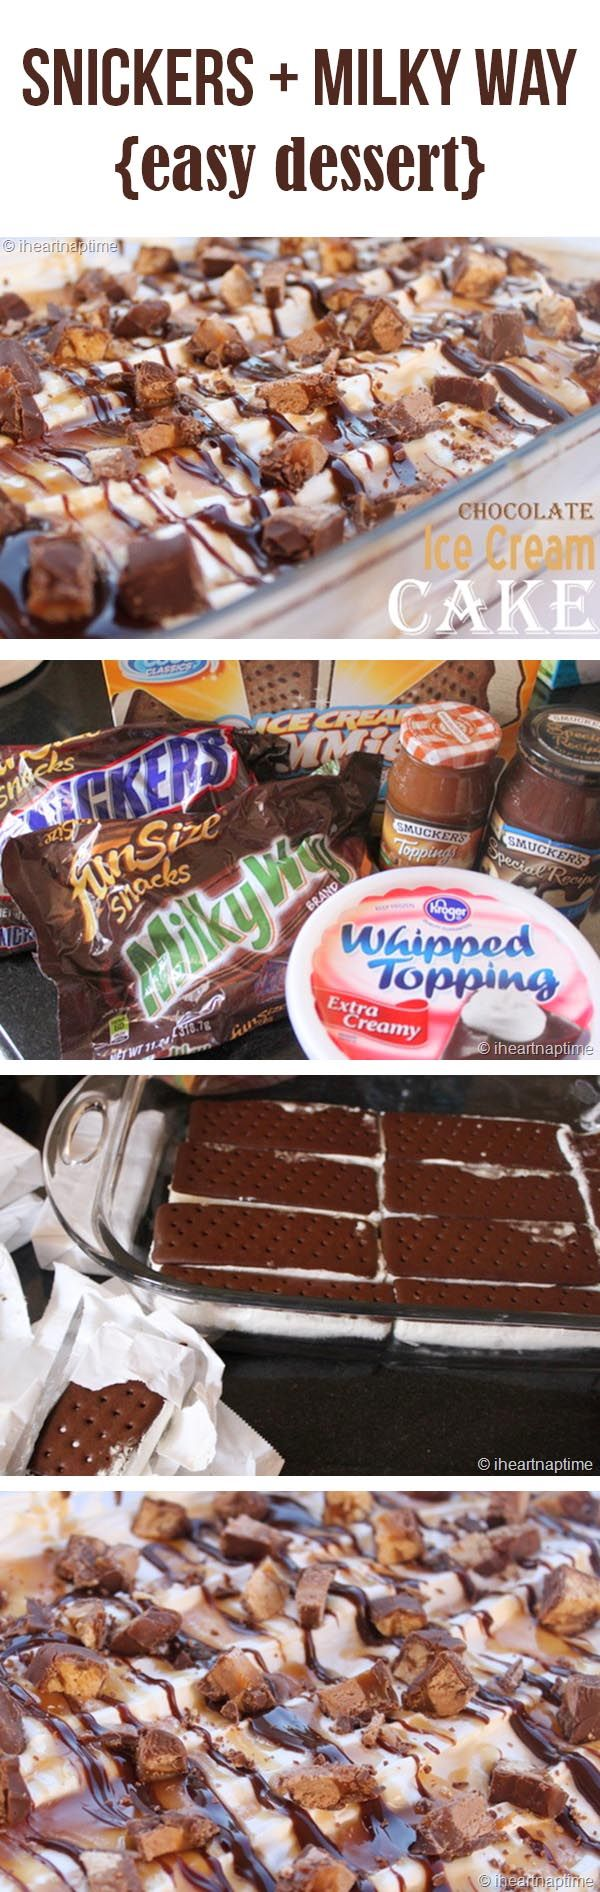 Ice Cream Cake - lay down ice cream sandwiches on a cake pan, spread whip cream over, drizzle Carmel and chocolate then top off with crushed snickers and milky way. Homemade ice cream cake perfect for a birthday:-)